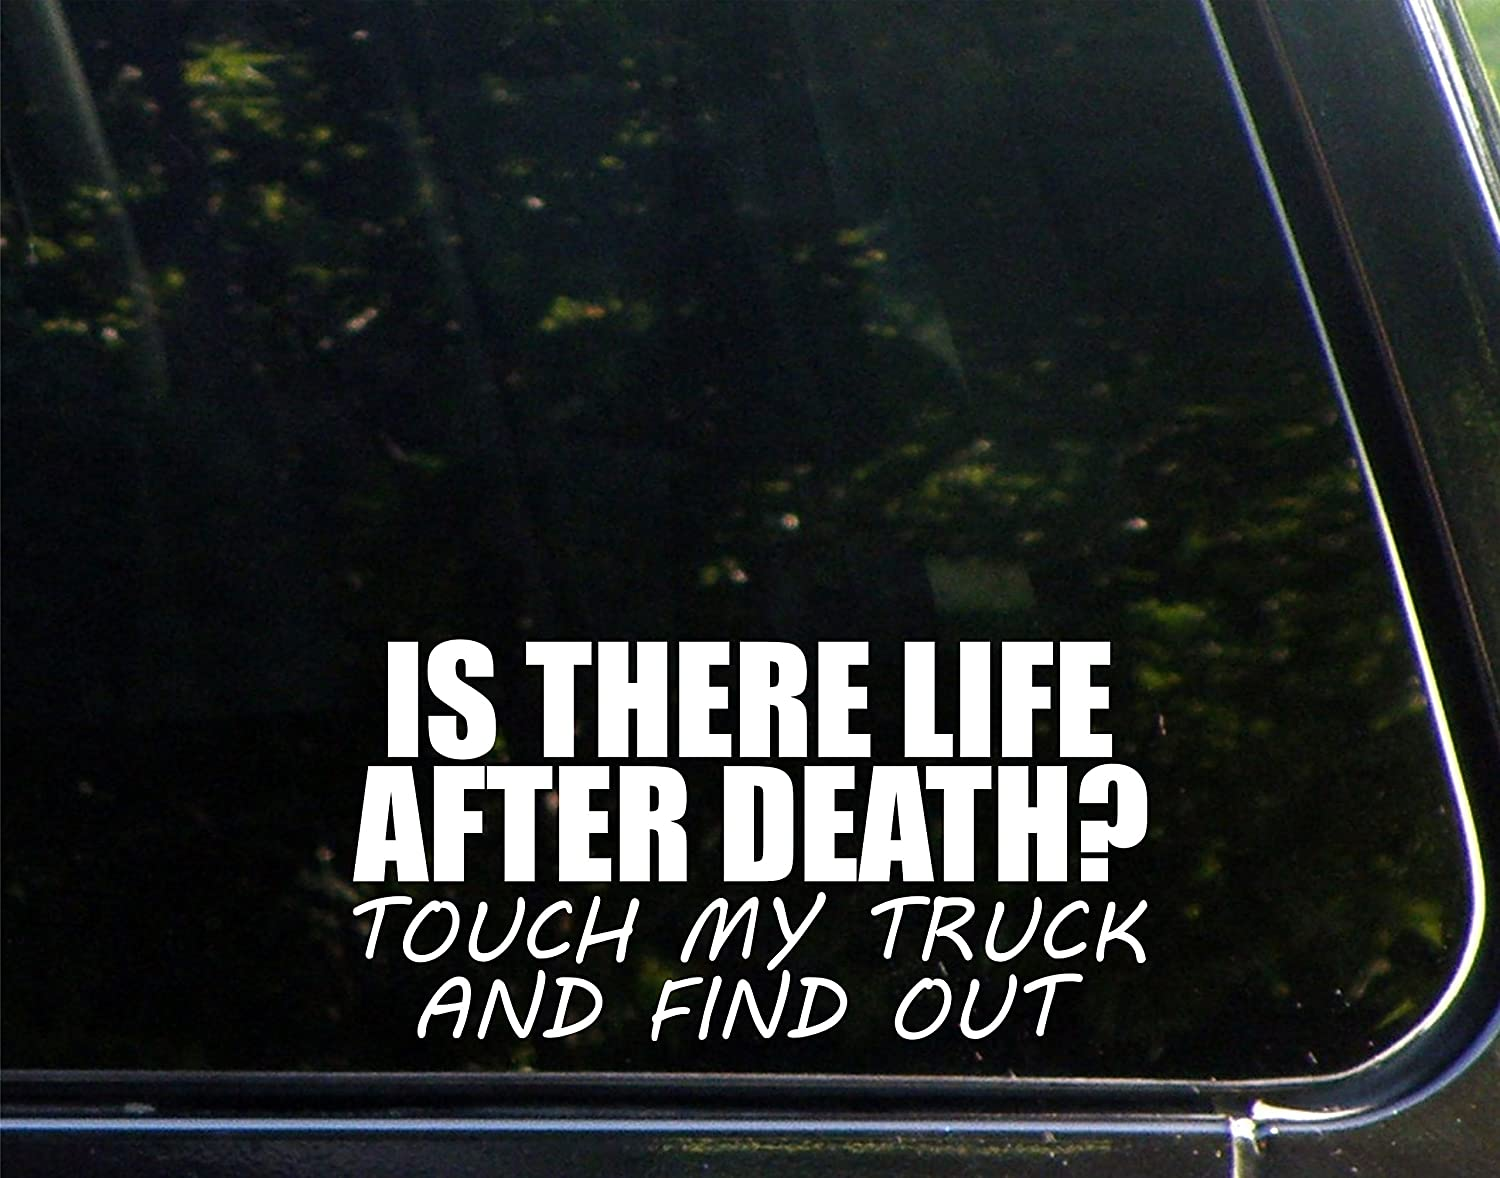 Amazoncom IS THERE LIFE AFTER DEATH Touch My Truck And Find Out - Custom vinyl stickers chicago